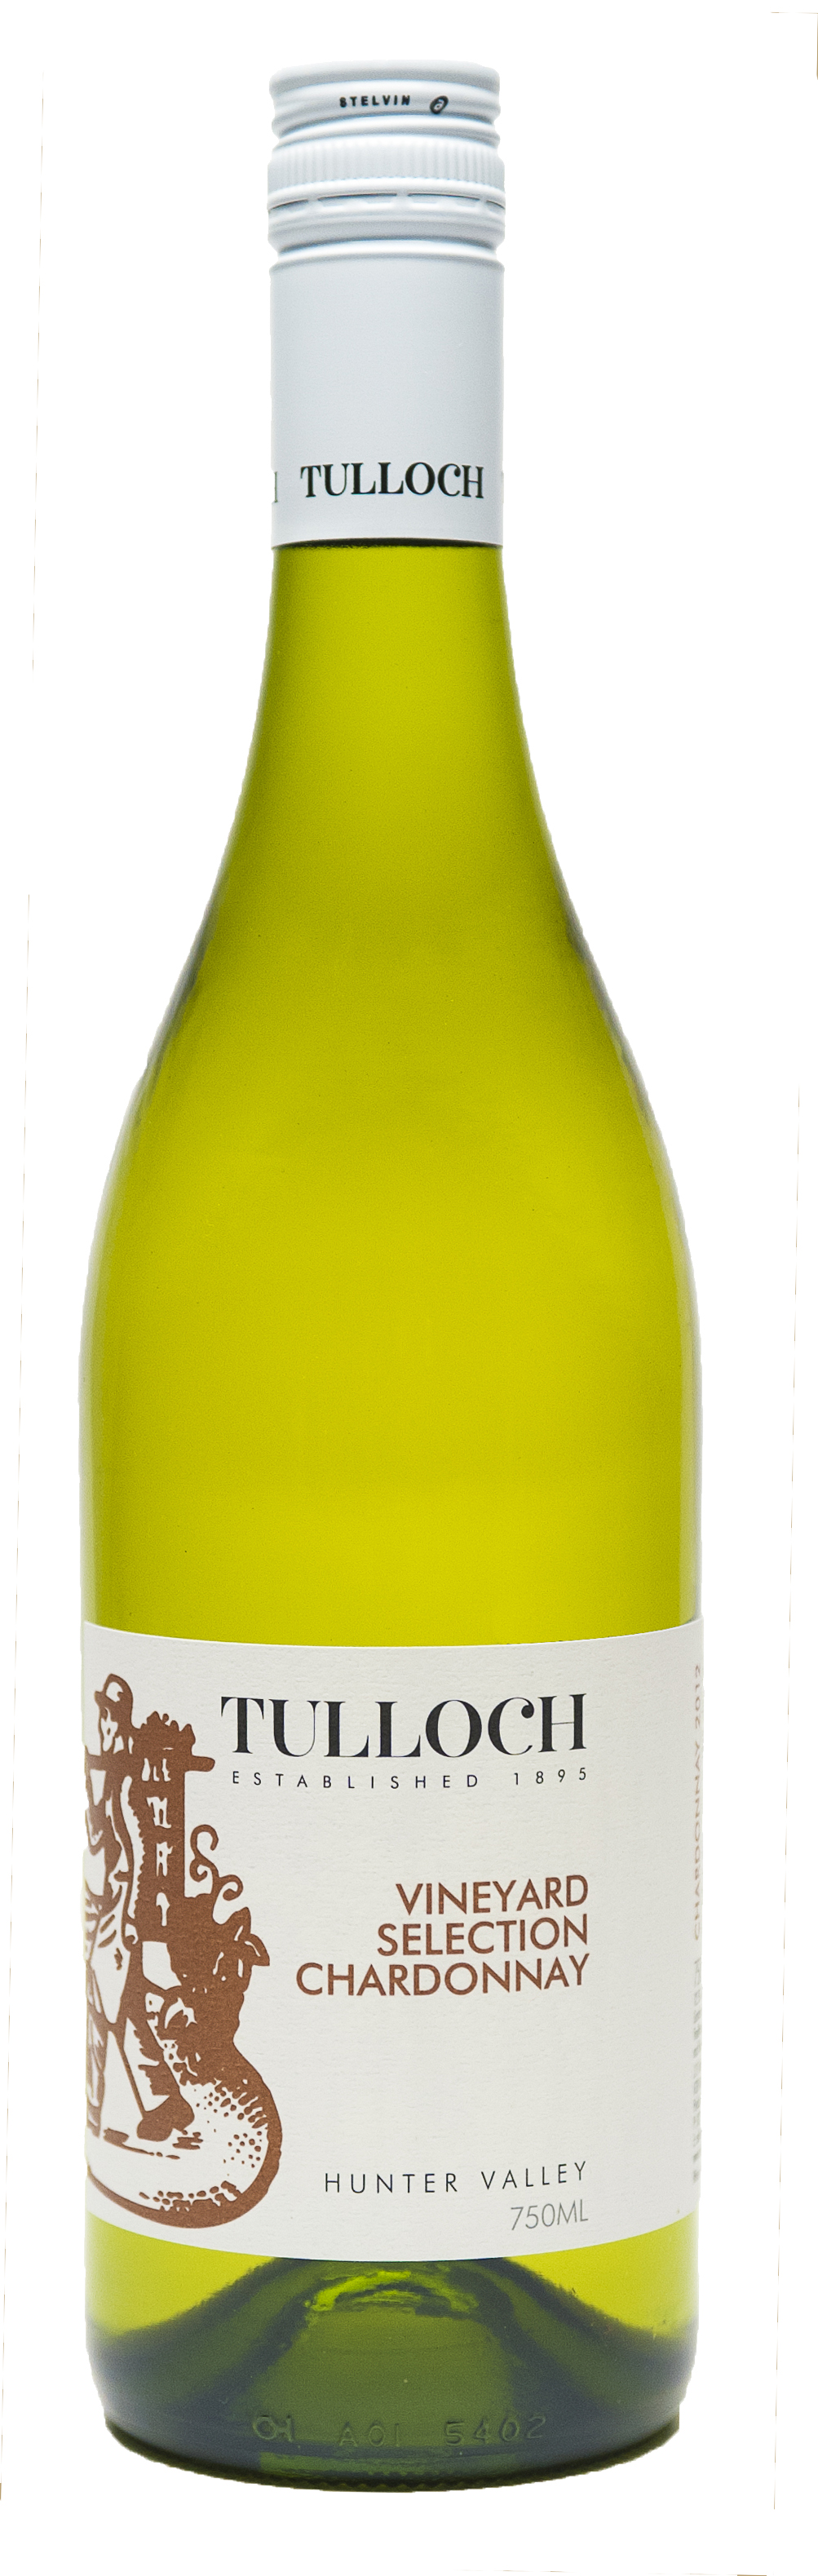 Vineyard Selection Chardonnay